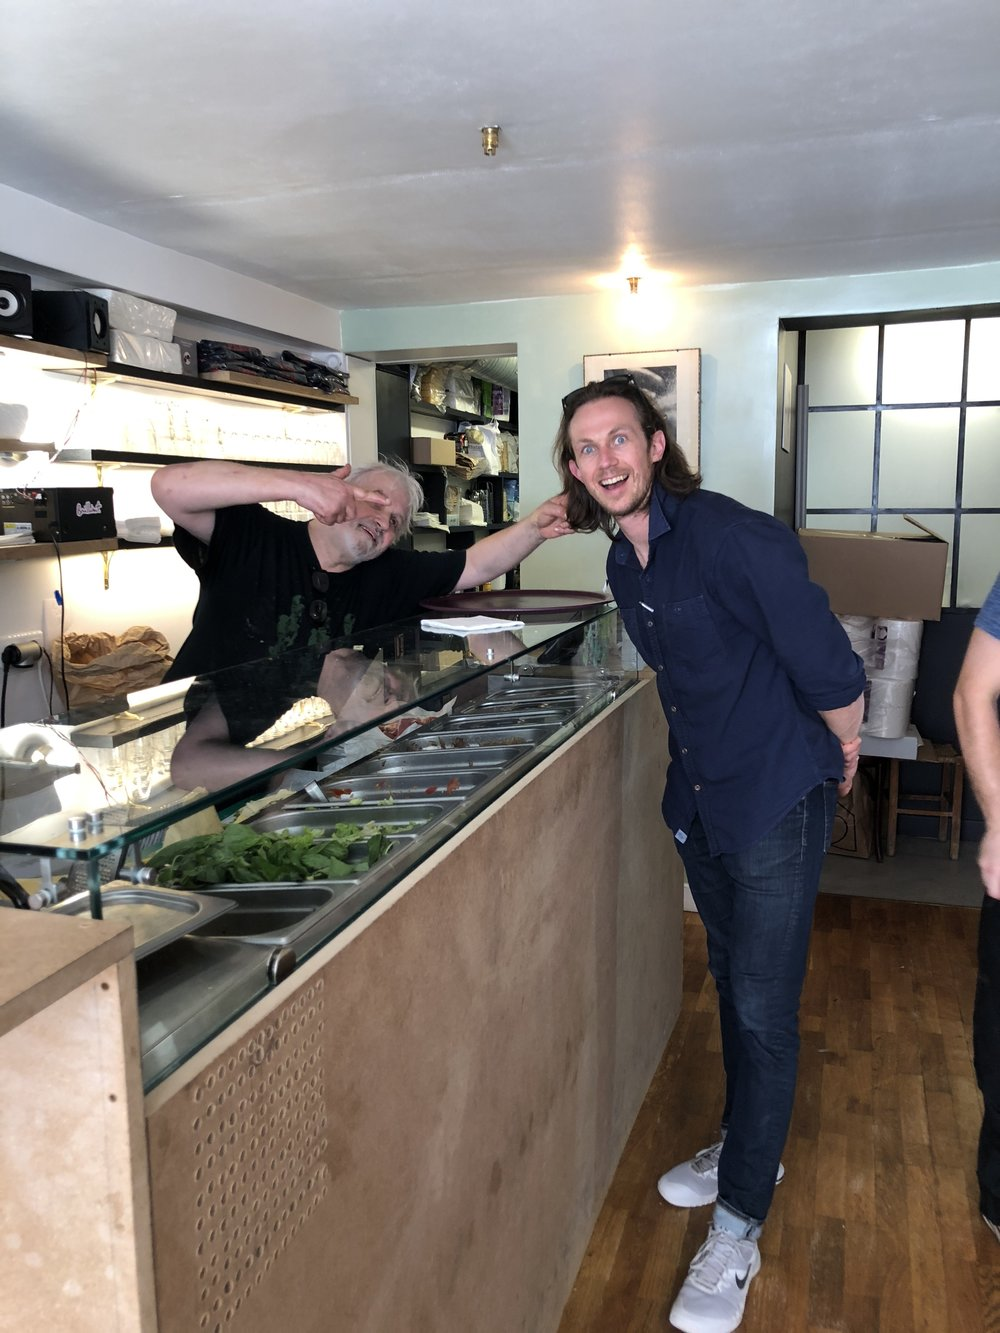 Spencer and Chef Alain at his new brick-and-mortar sandwich shop in the Marais neighborhood of Paris.